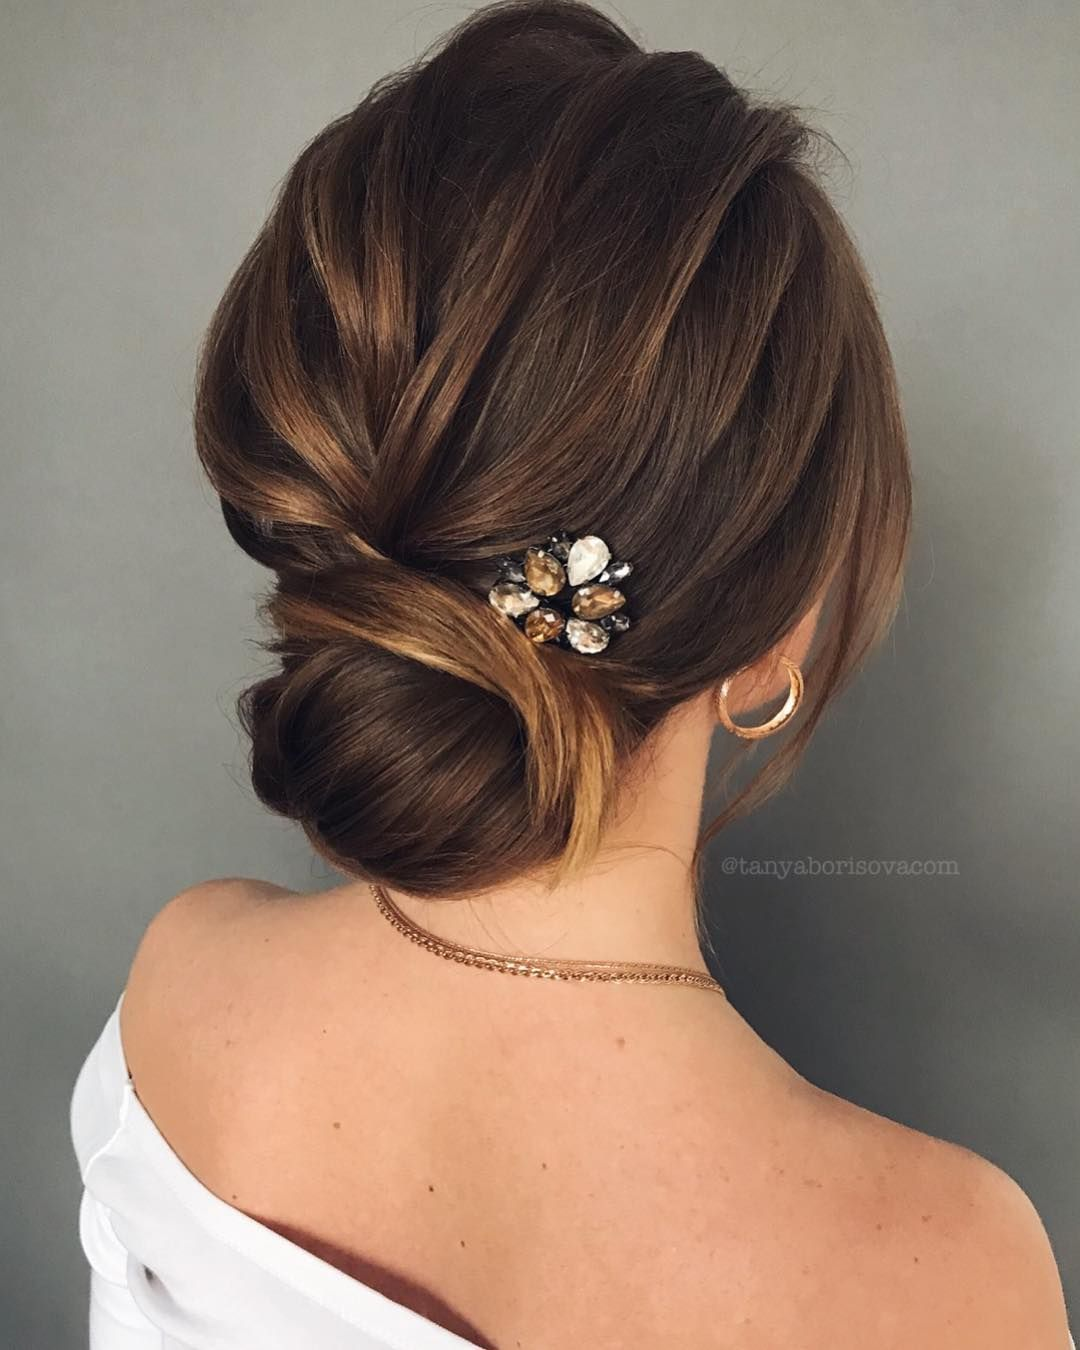 75 Drop-Dead Gorgeous Wedding Hairstyles For A Romantic Wedding